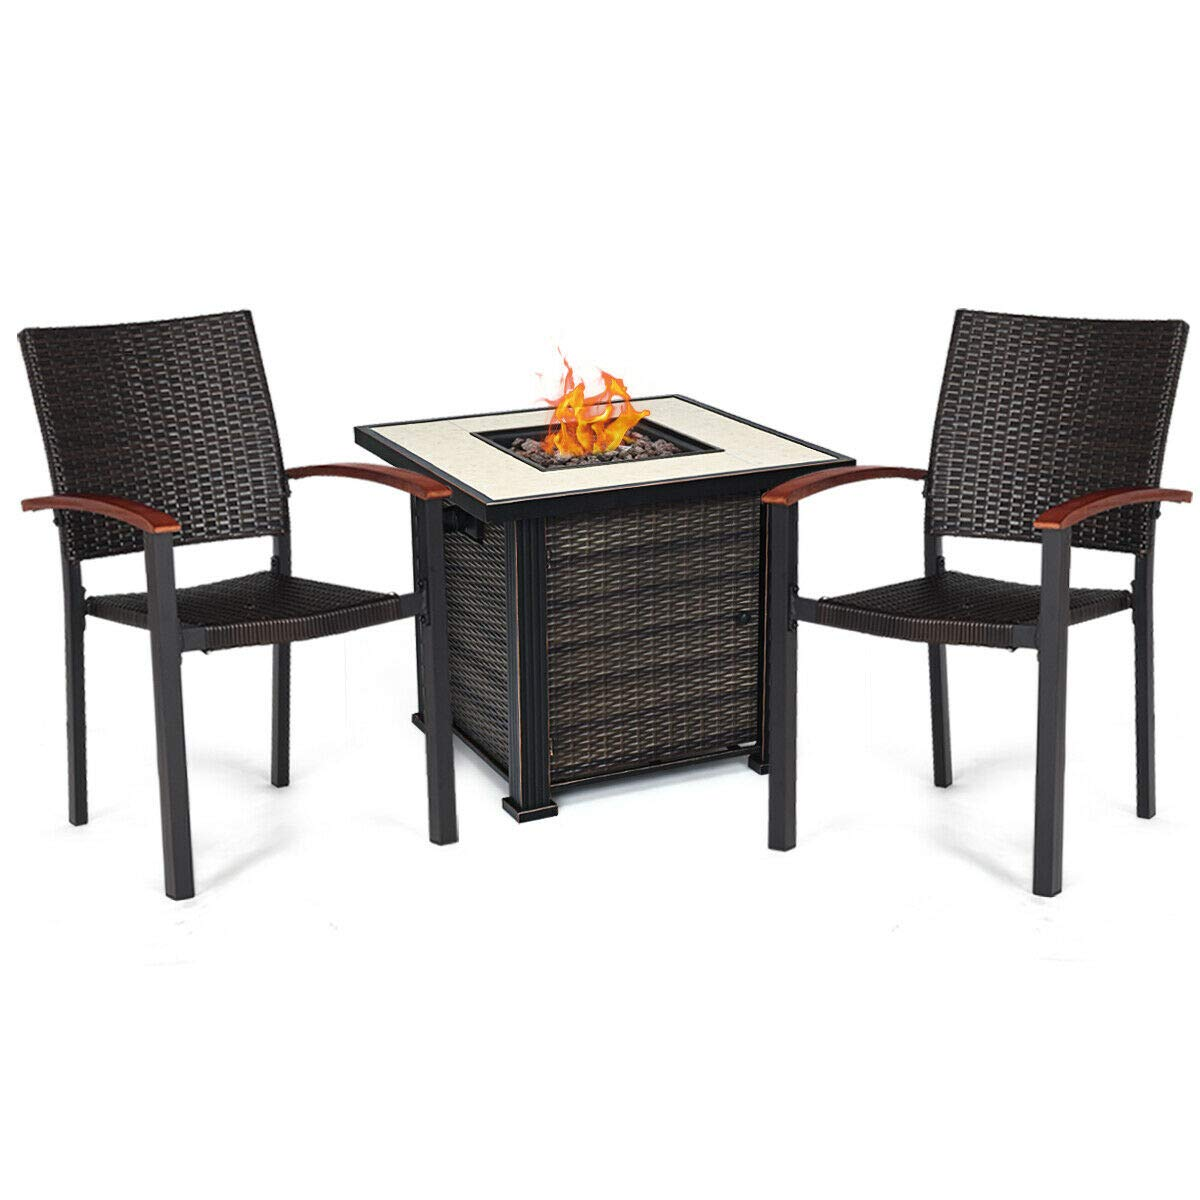 Tangkula 50,000 BTUs Square Propane Gas Fire Pit Table Set, 3 PCS Heater Outdoor Table with 2 Rattan Chairs by Tangkula